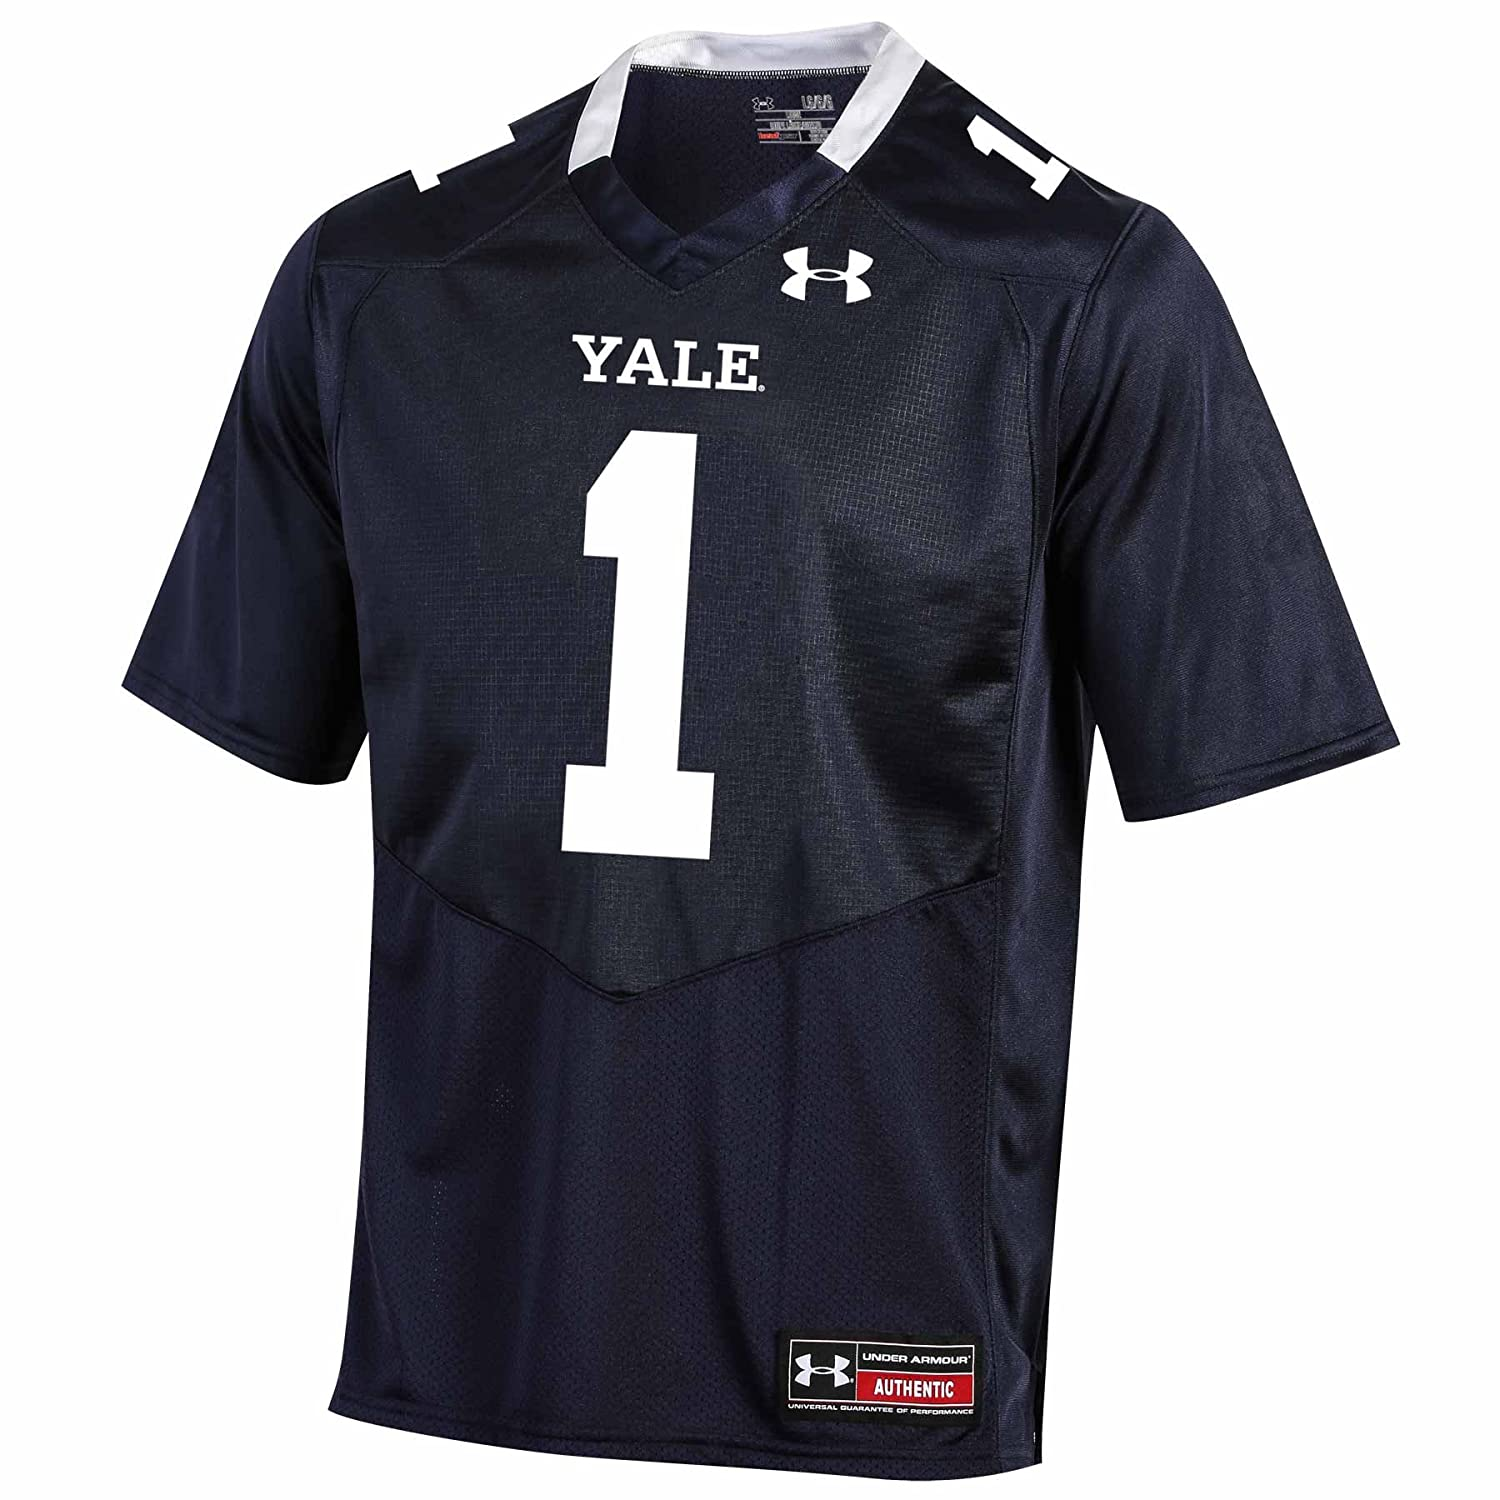 3X-Large Navy Under Armour NCAA Yale Bulldogs #1 Mens Official Sideline Jersey